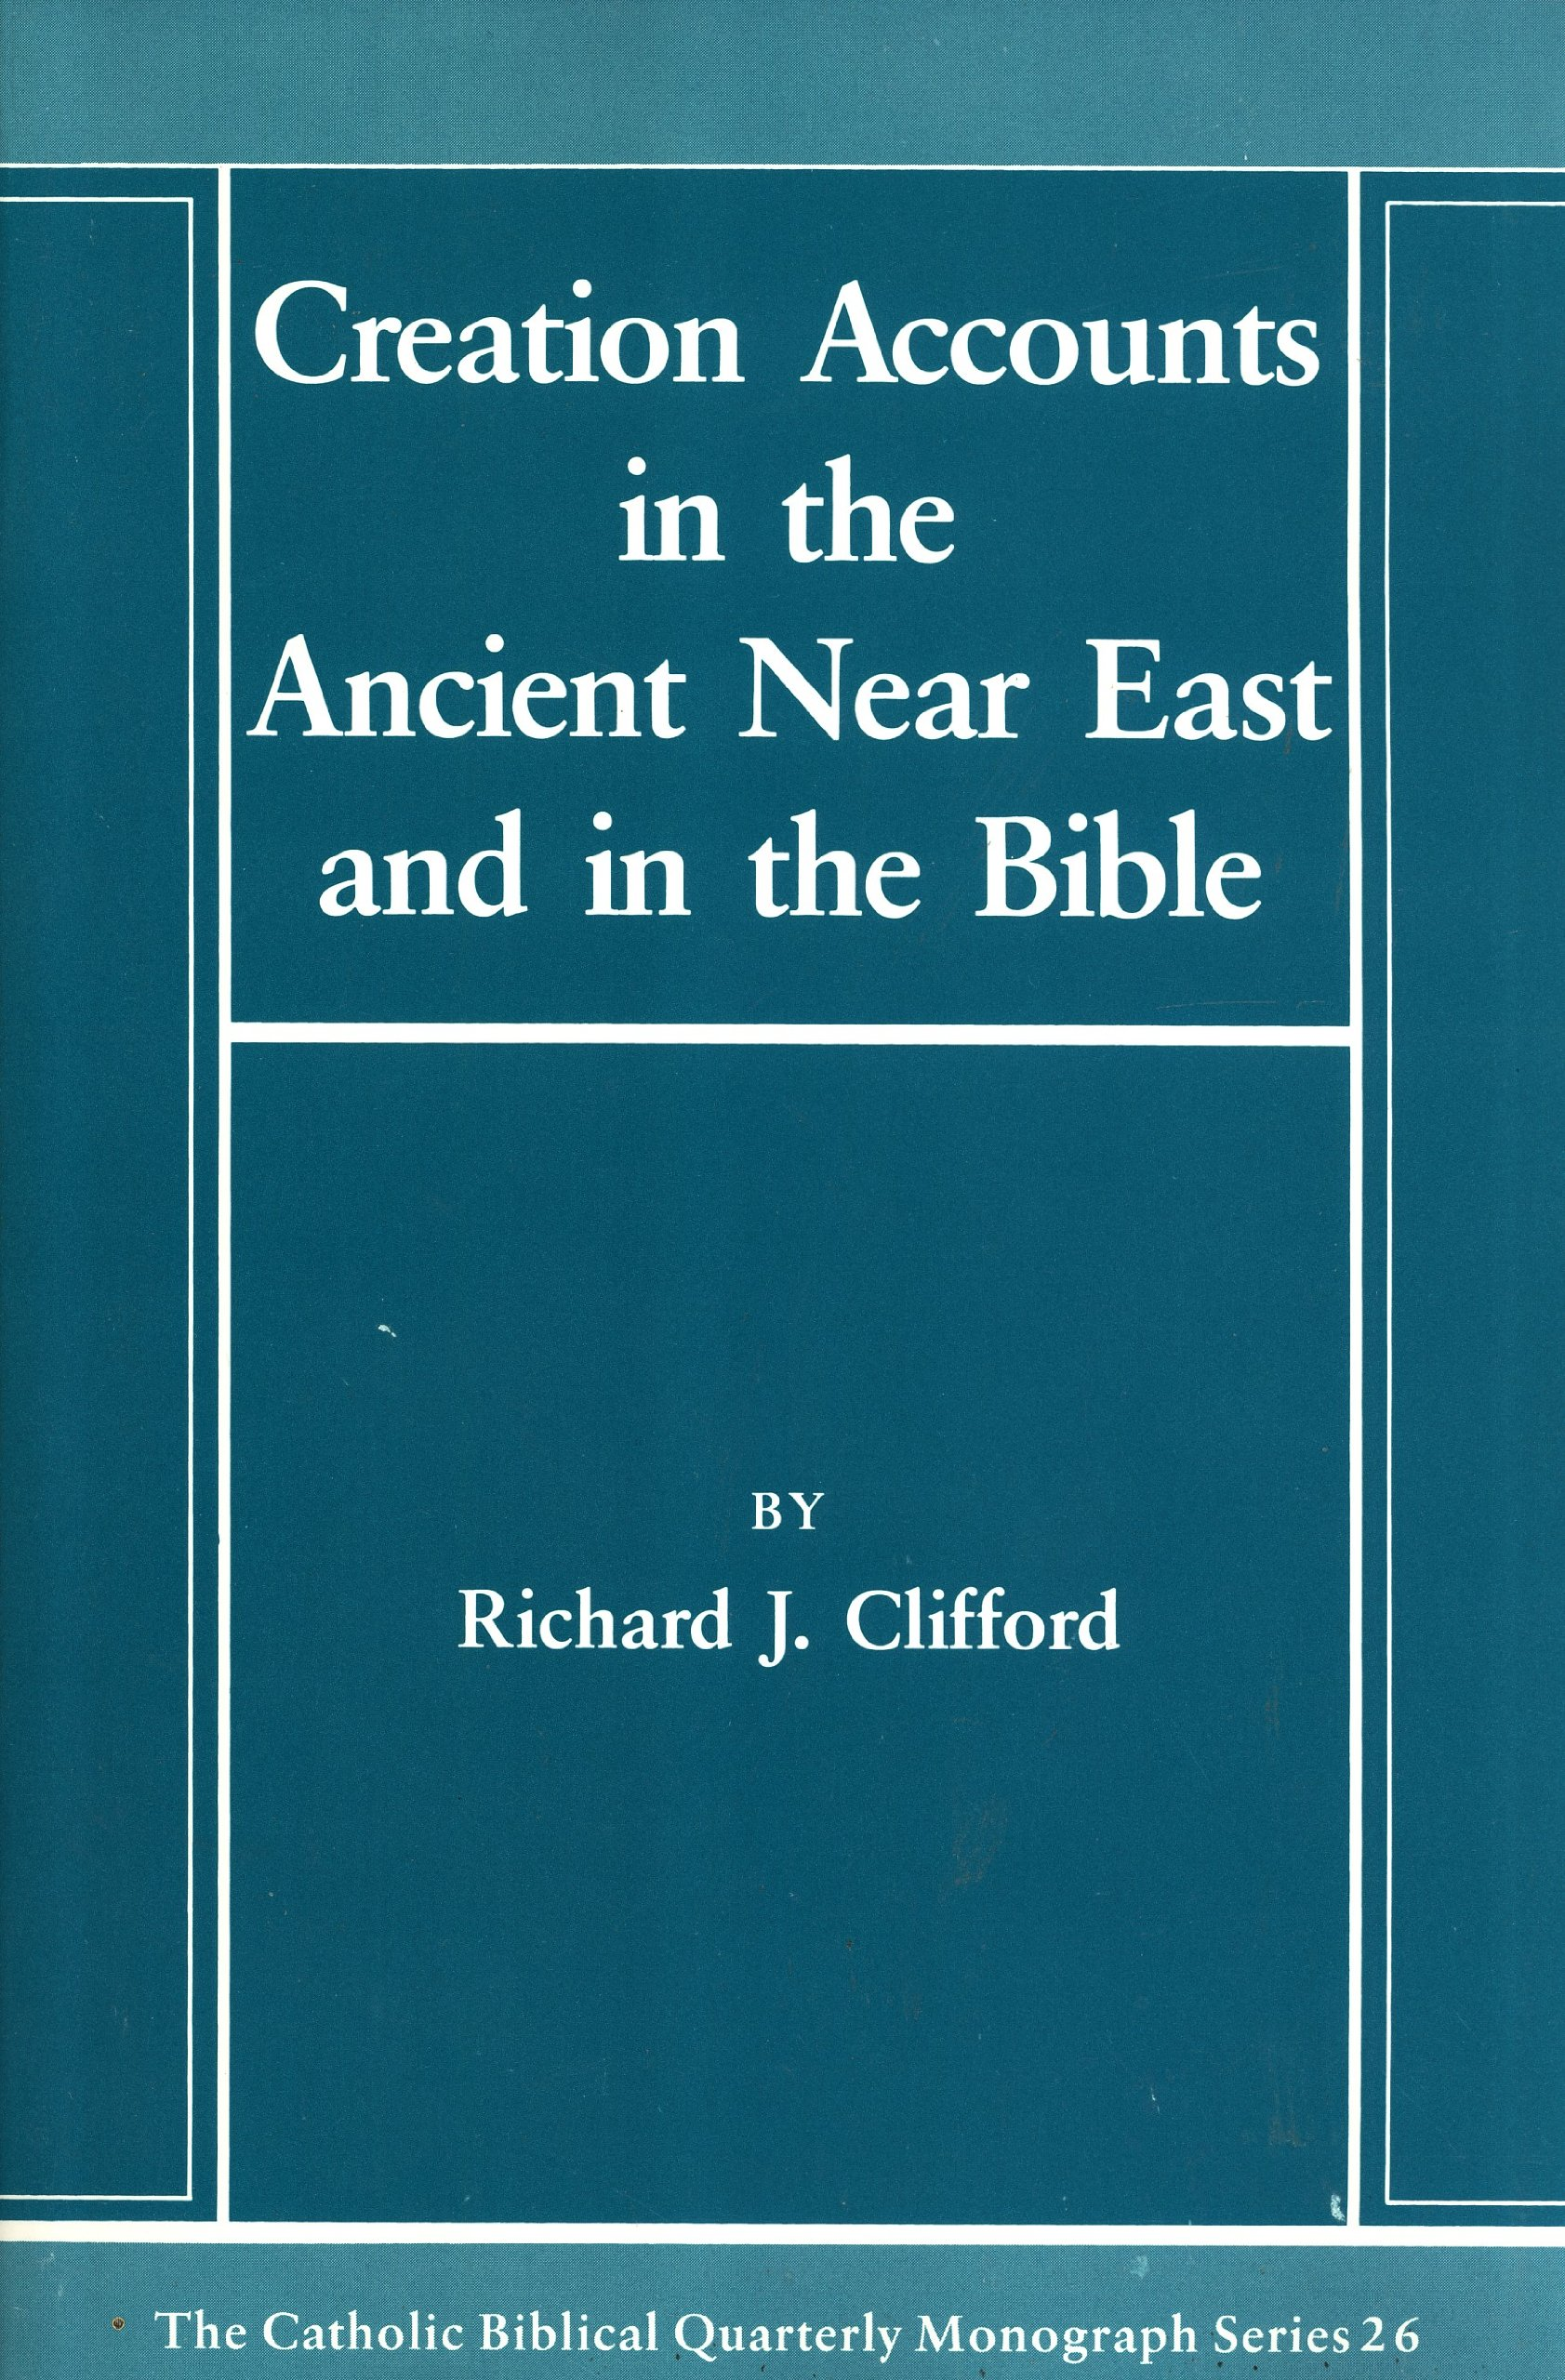 creation accounts in the ancient near east and in the bible